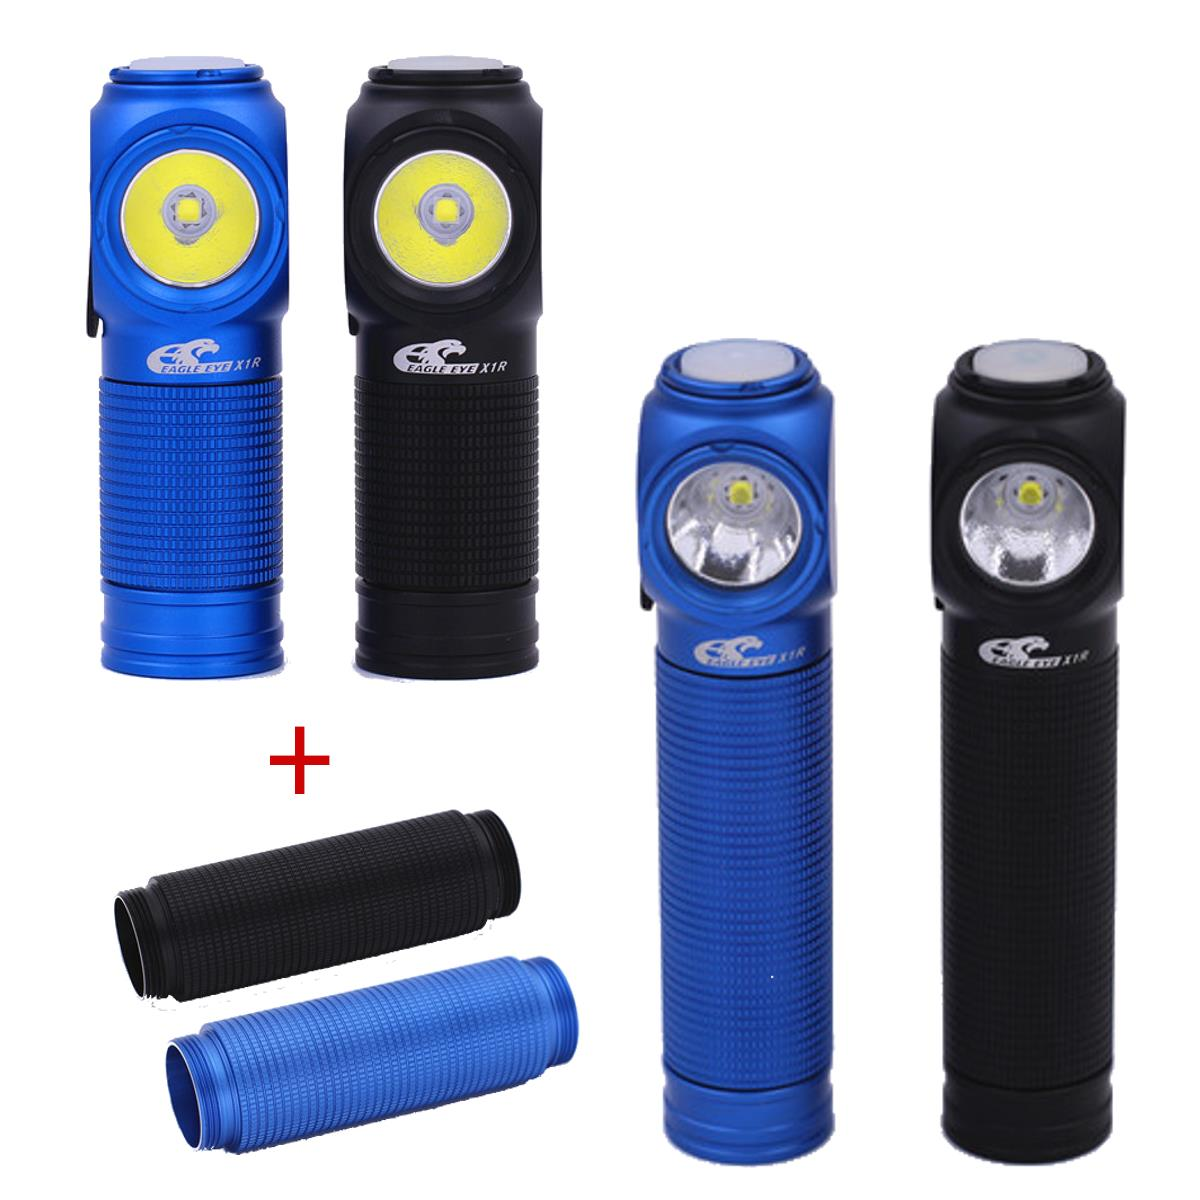 Eagle Eye X1R CW Flashlight Black